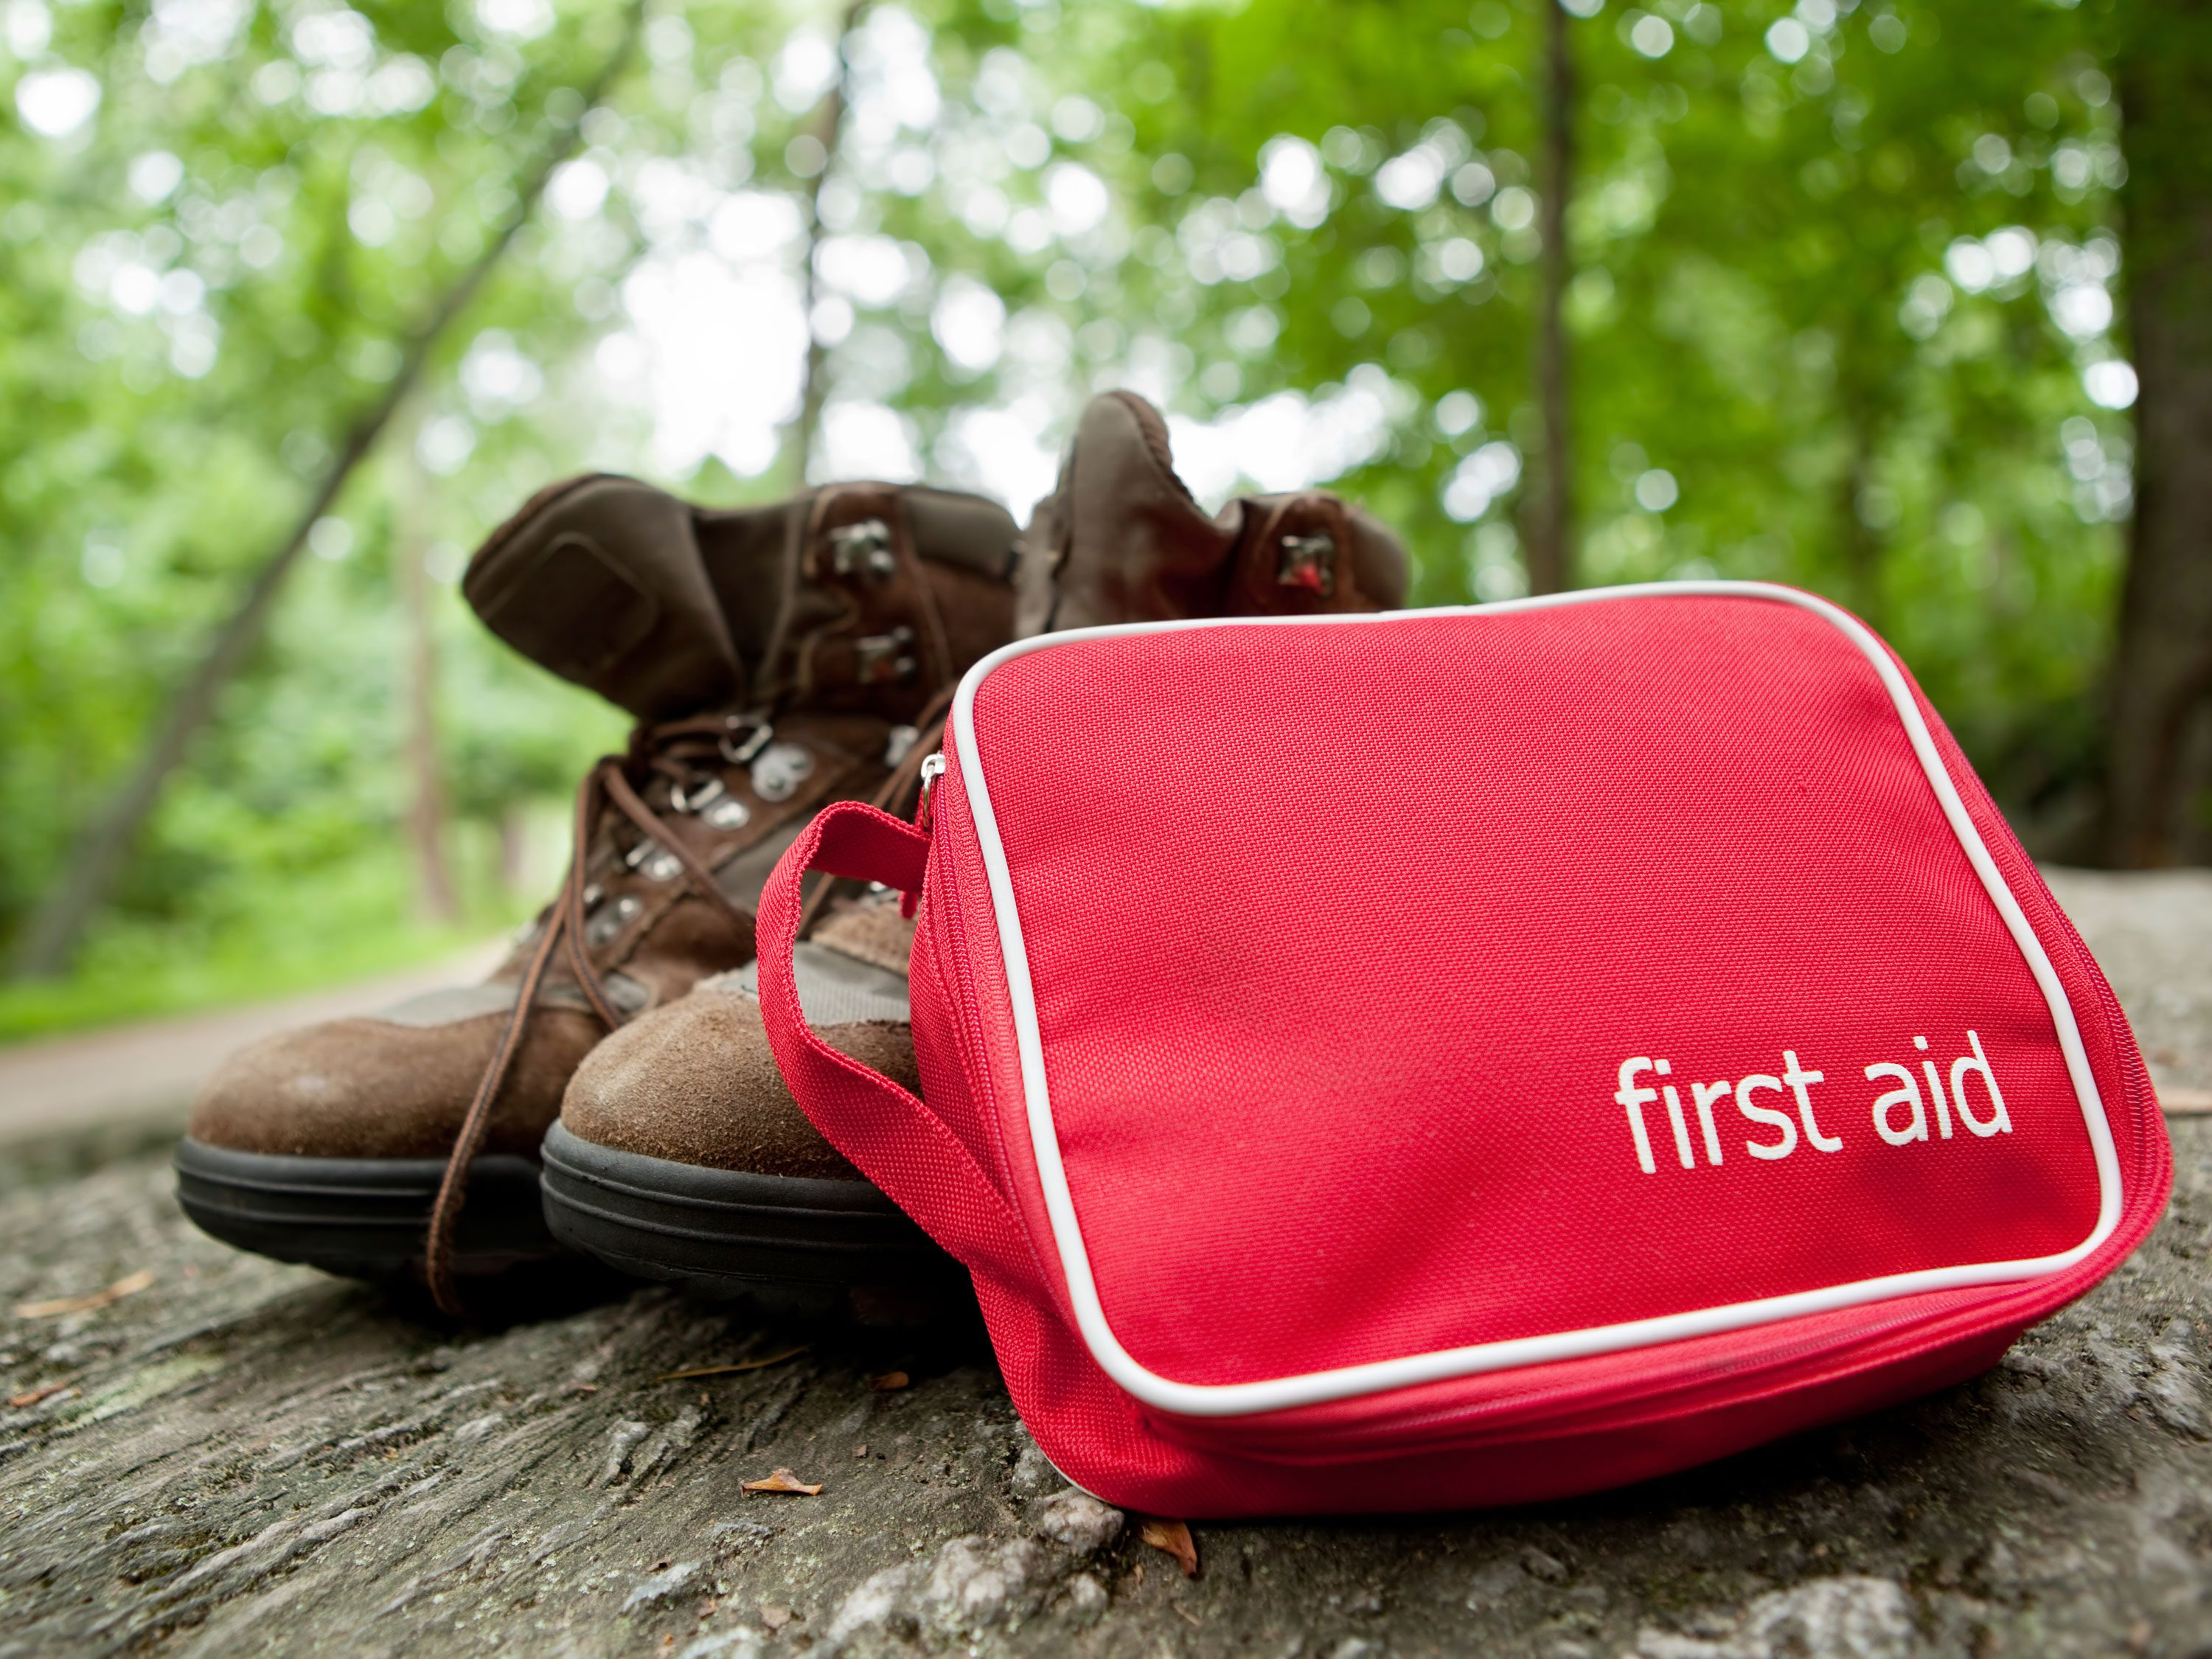 First-Aid Kit for Outdoor Activities